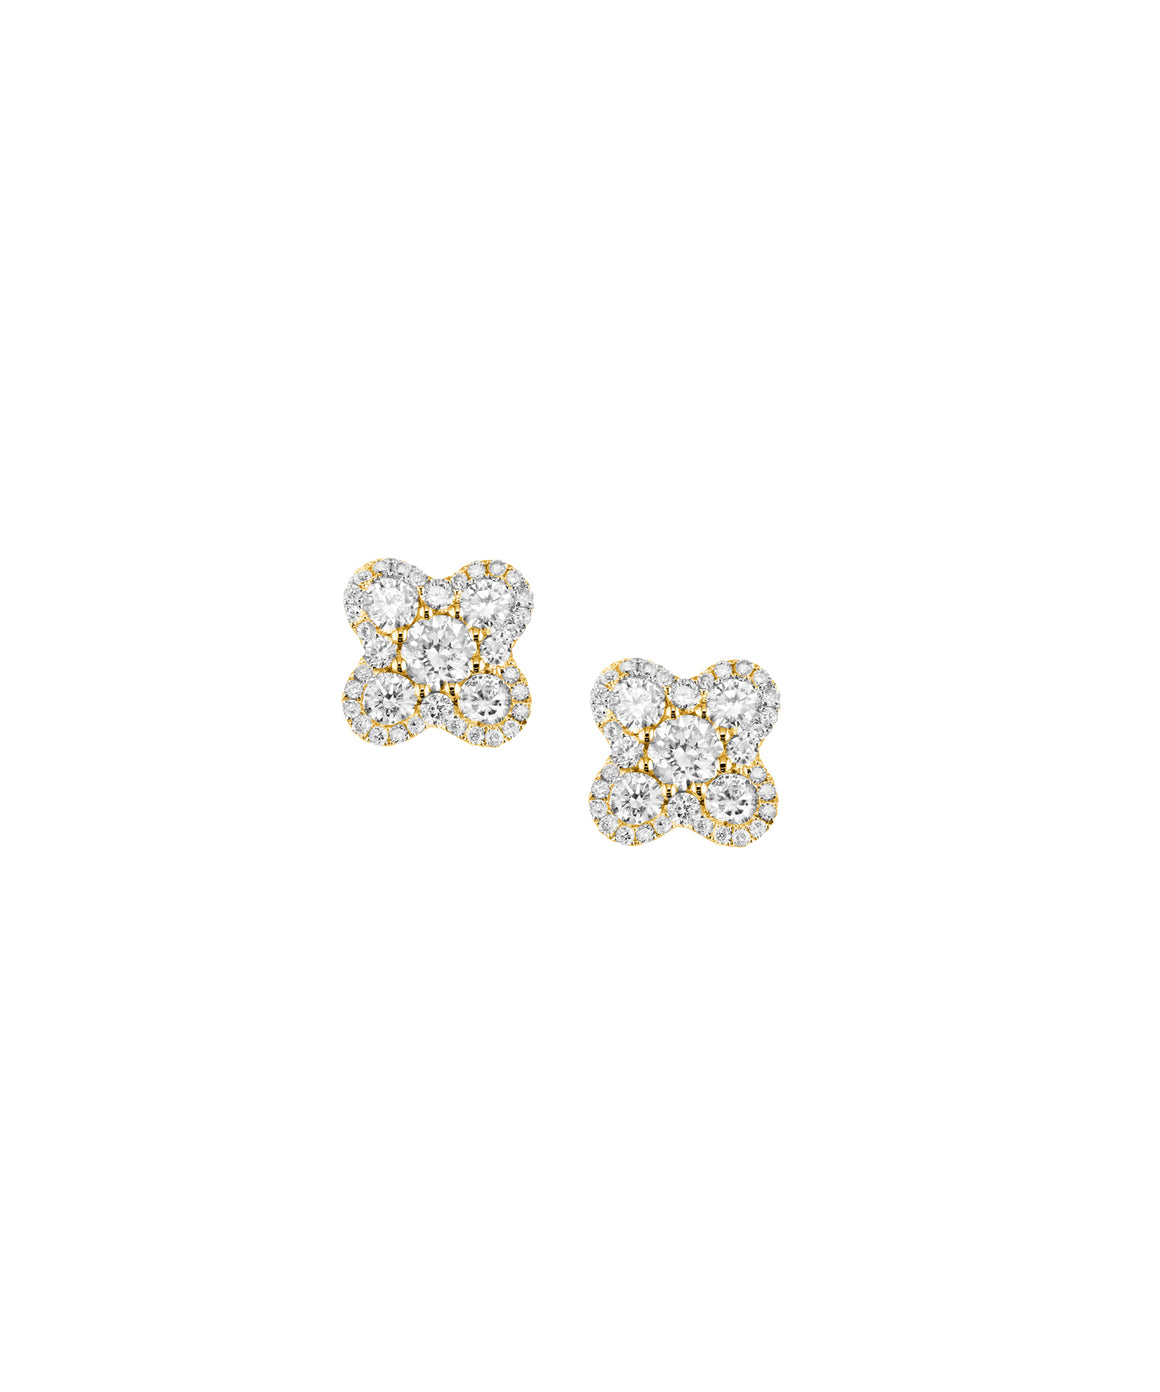 "These delightful 18k yellow gold earrings are cleverly set with diamonds totaling 1.30 carat. The studs are about 3/8"" across."